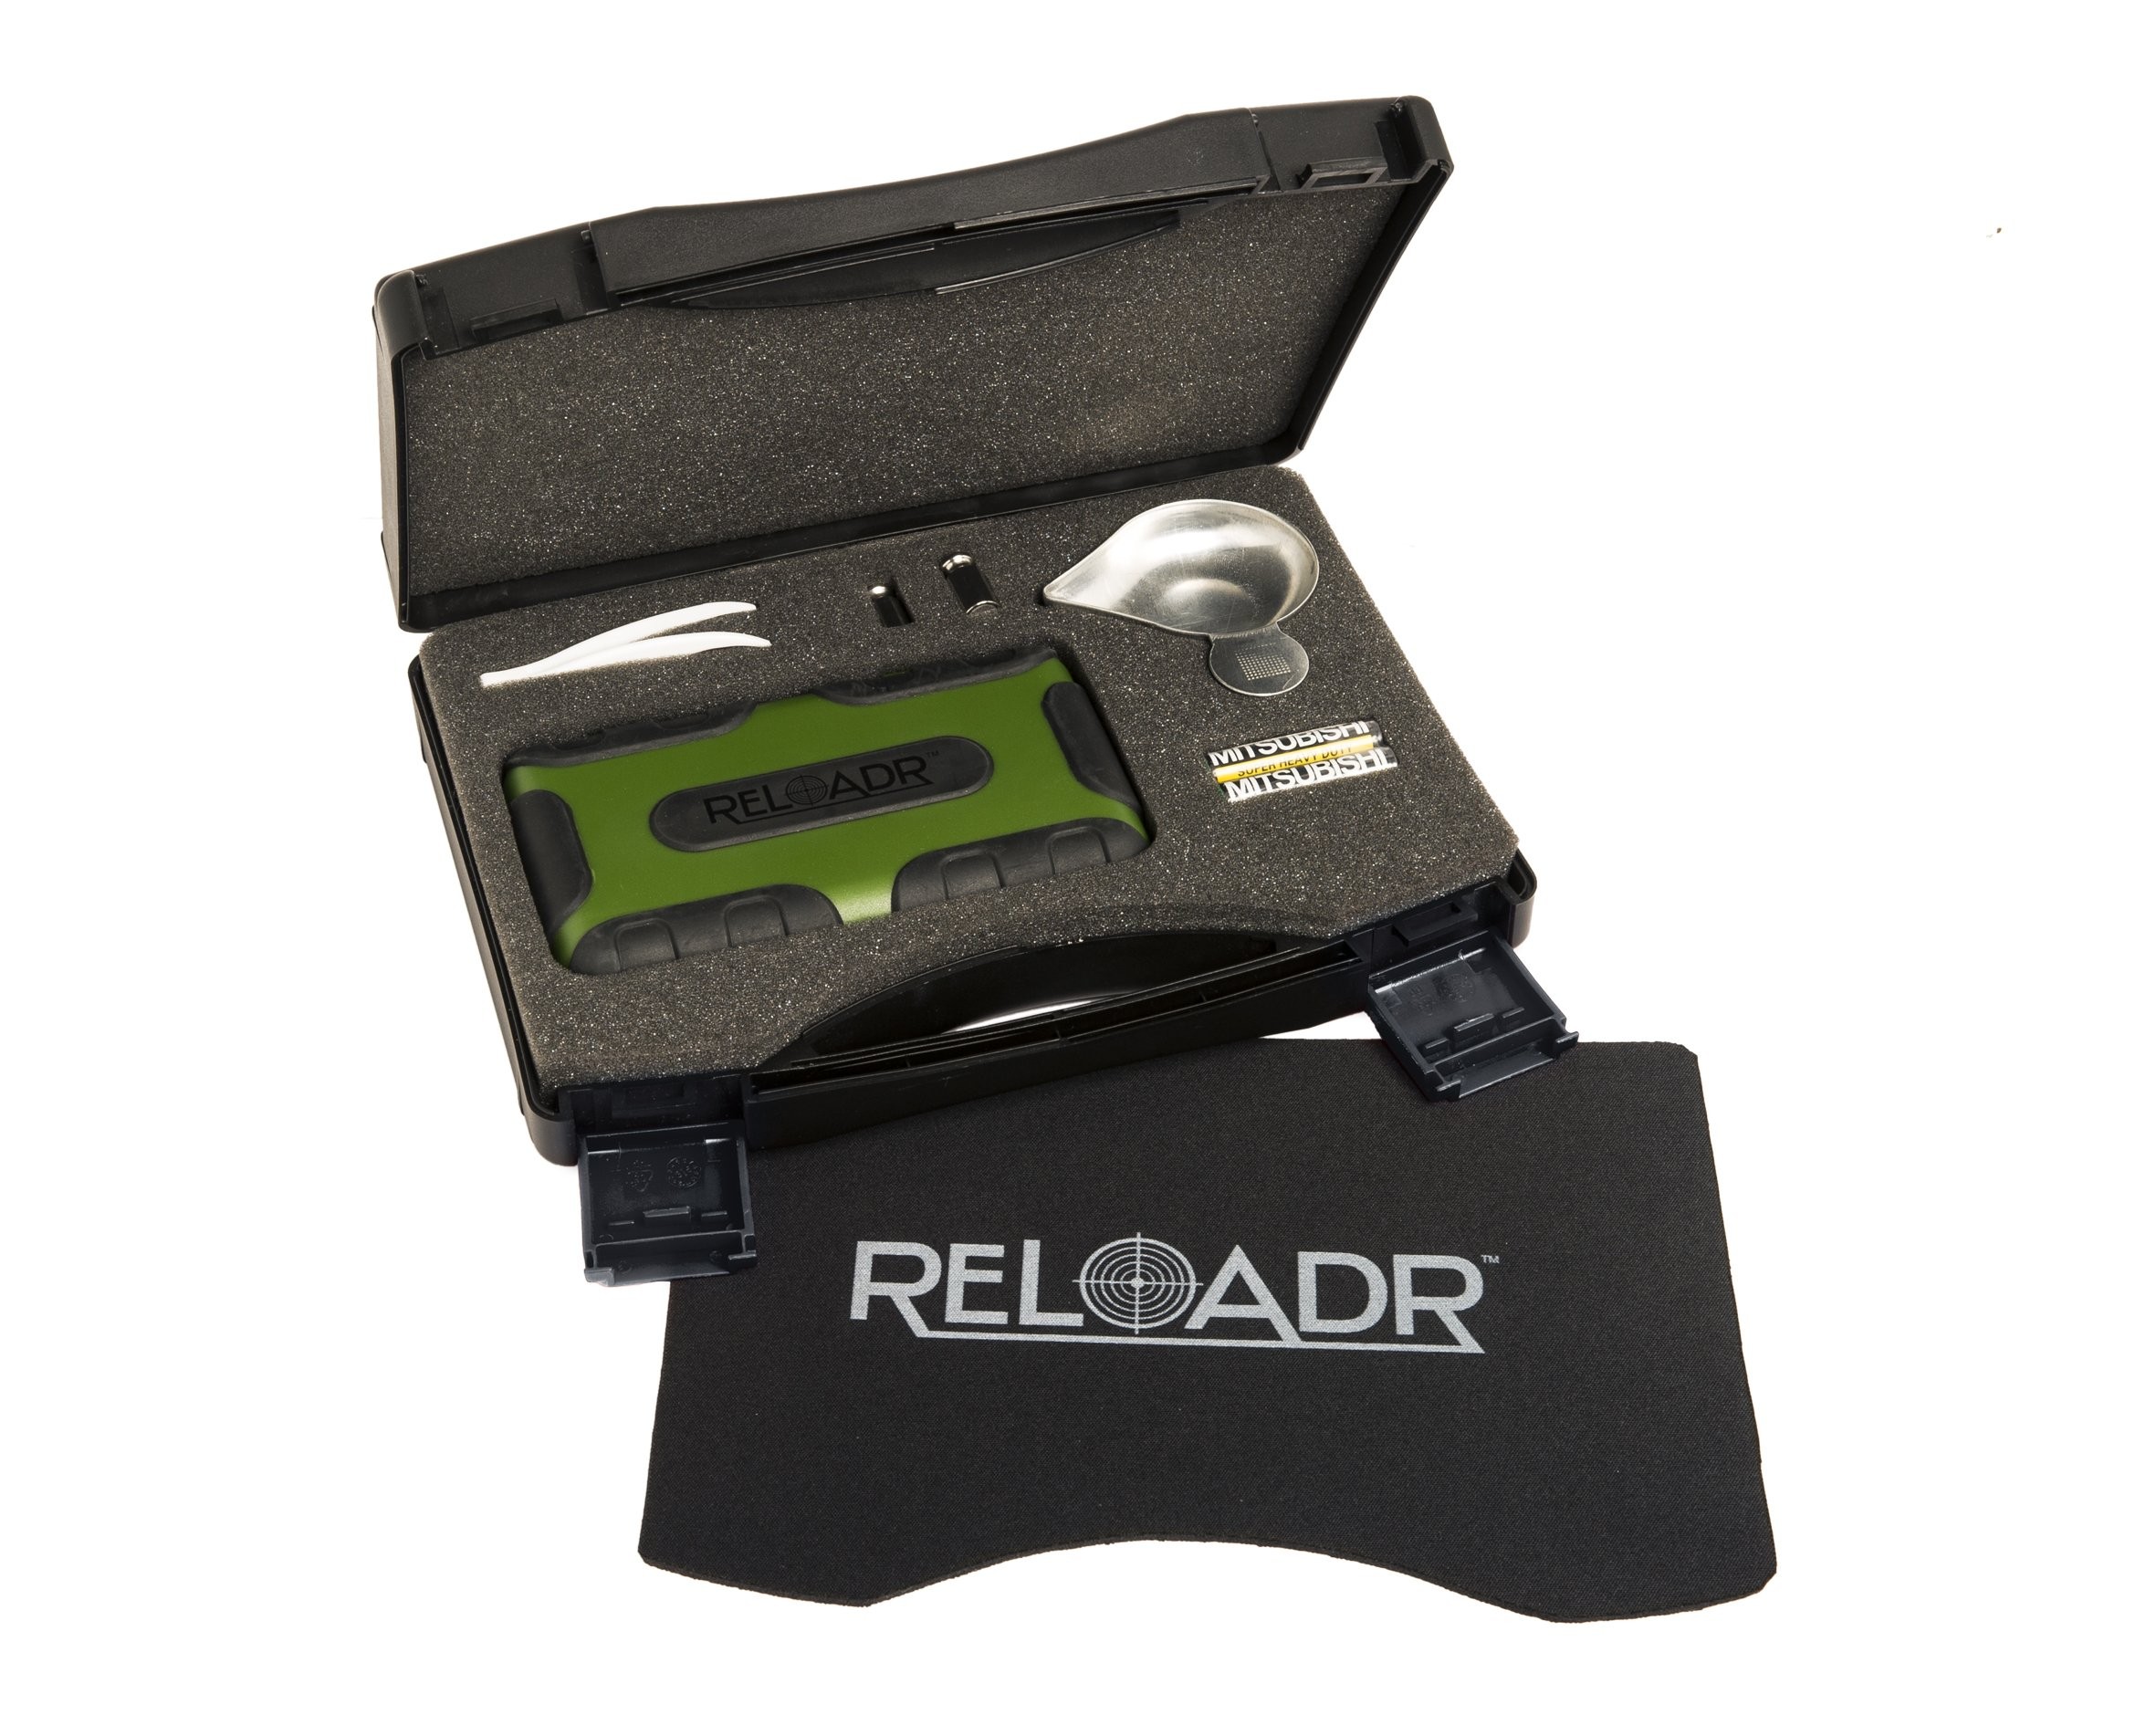 dalman-rld-20-on-balance-reloadr&trade-scale-kit-20g-x-0001g